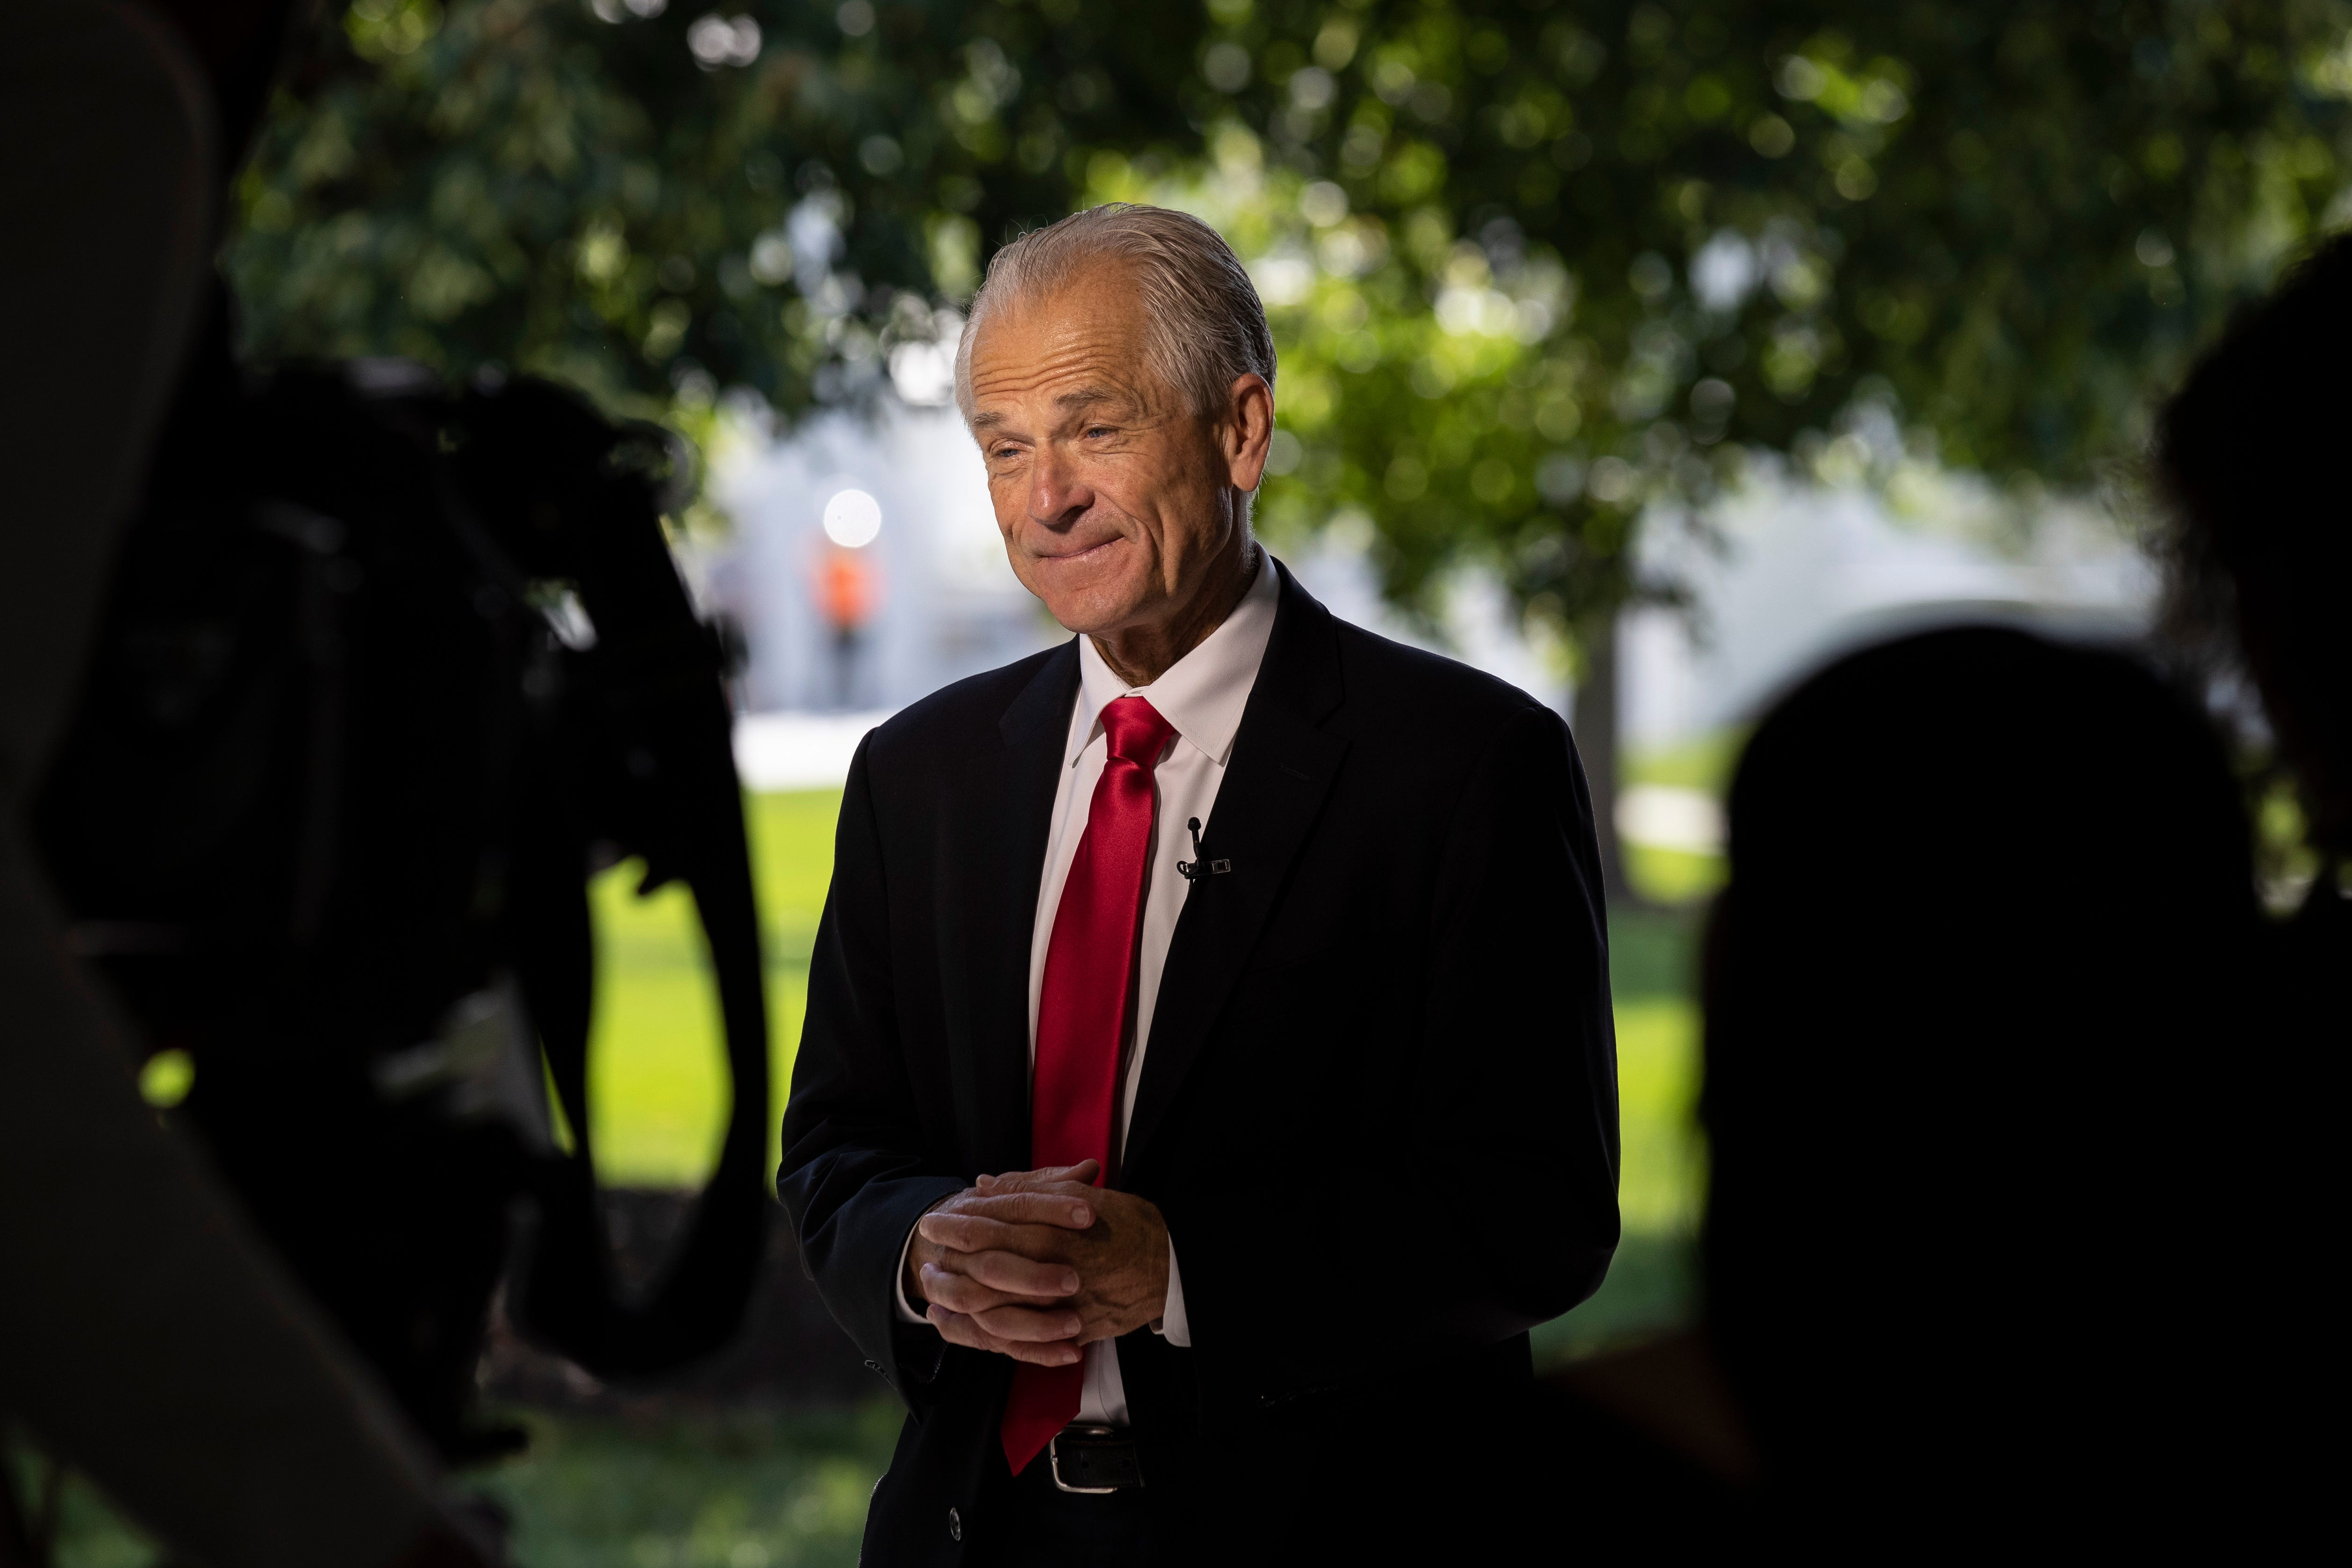 The Lord and the Founding Fathers created executive orders,  says Peter Navarro in defending Trump orders